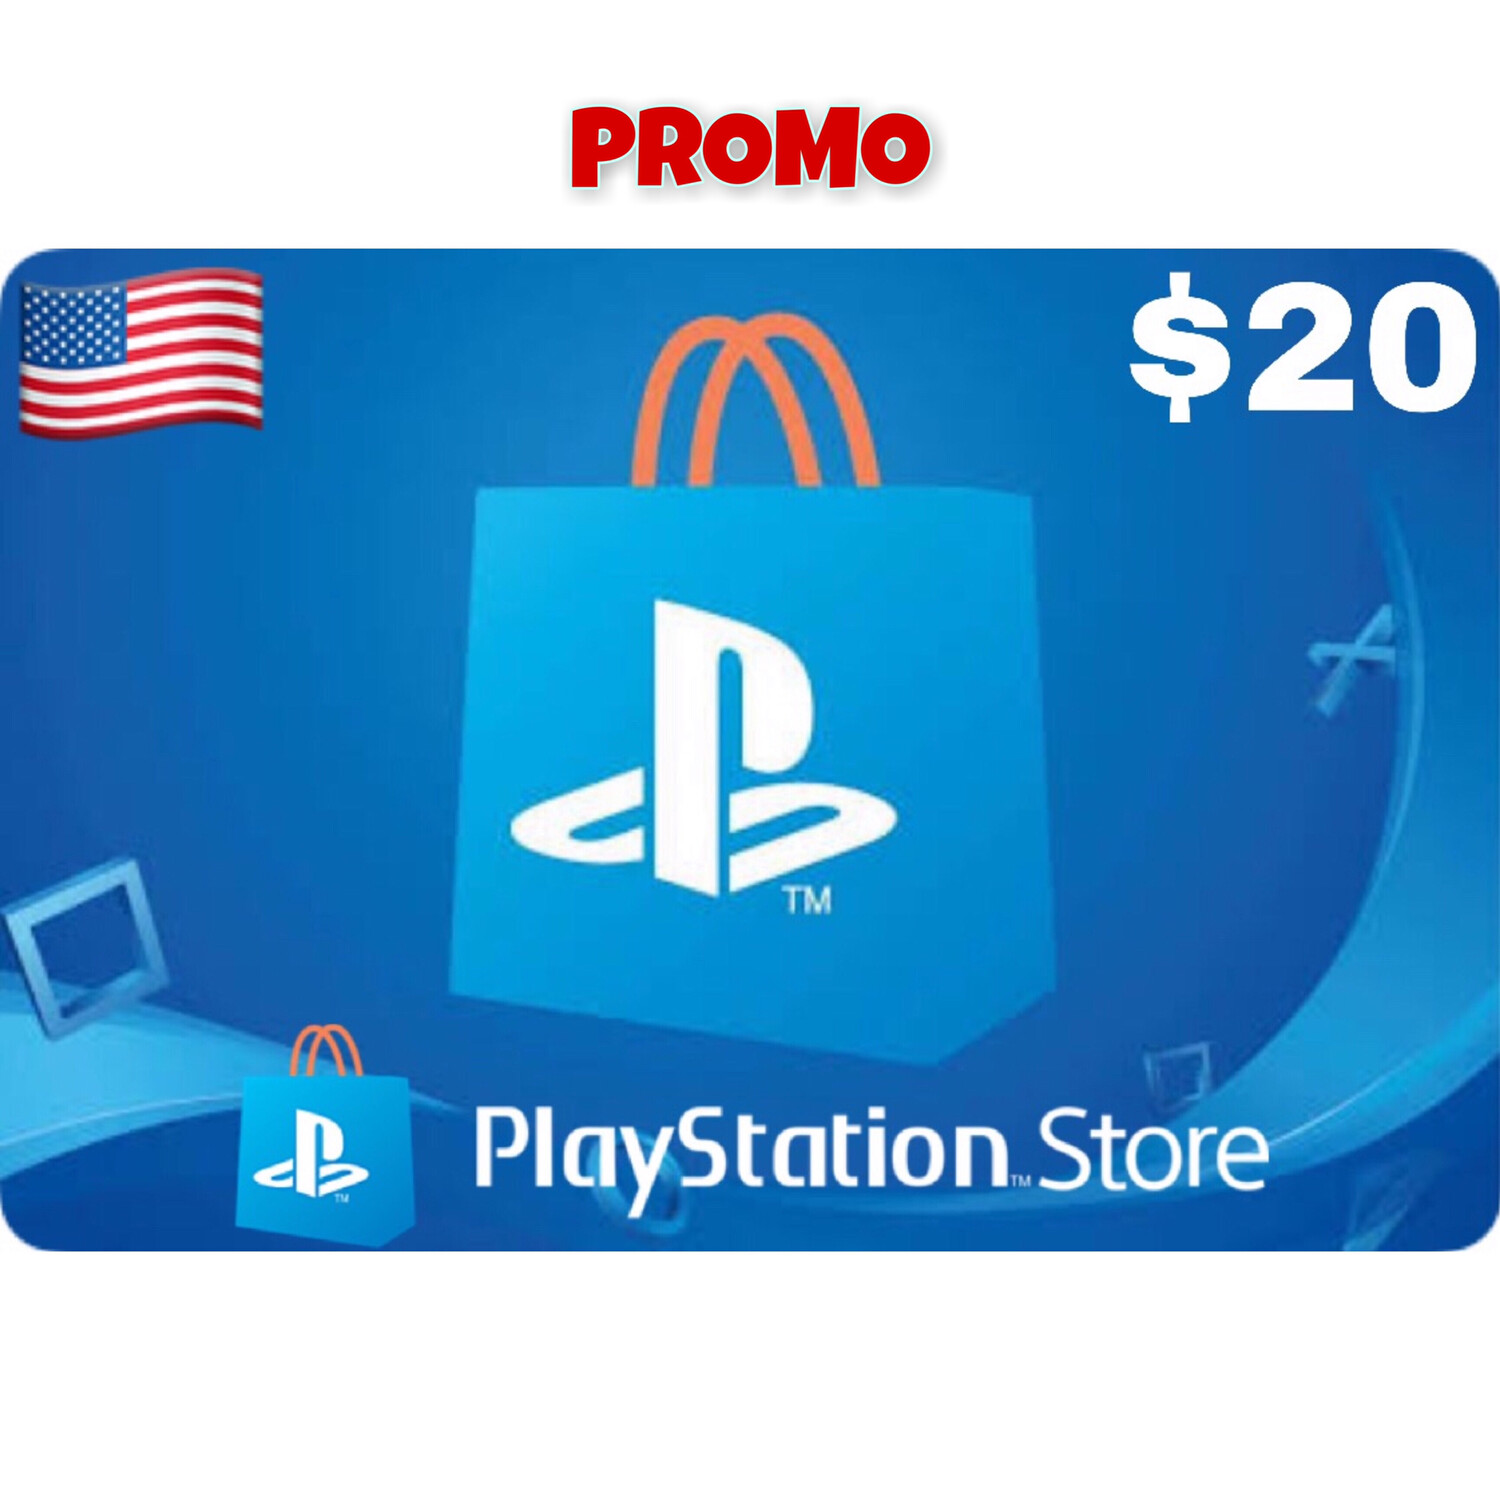 Promo Playstation (PSN Card) USA $20 (Web Order Only)